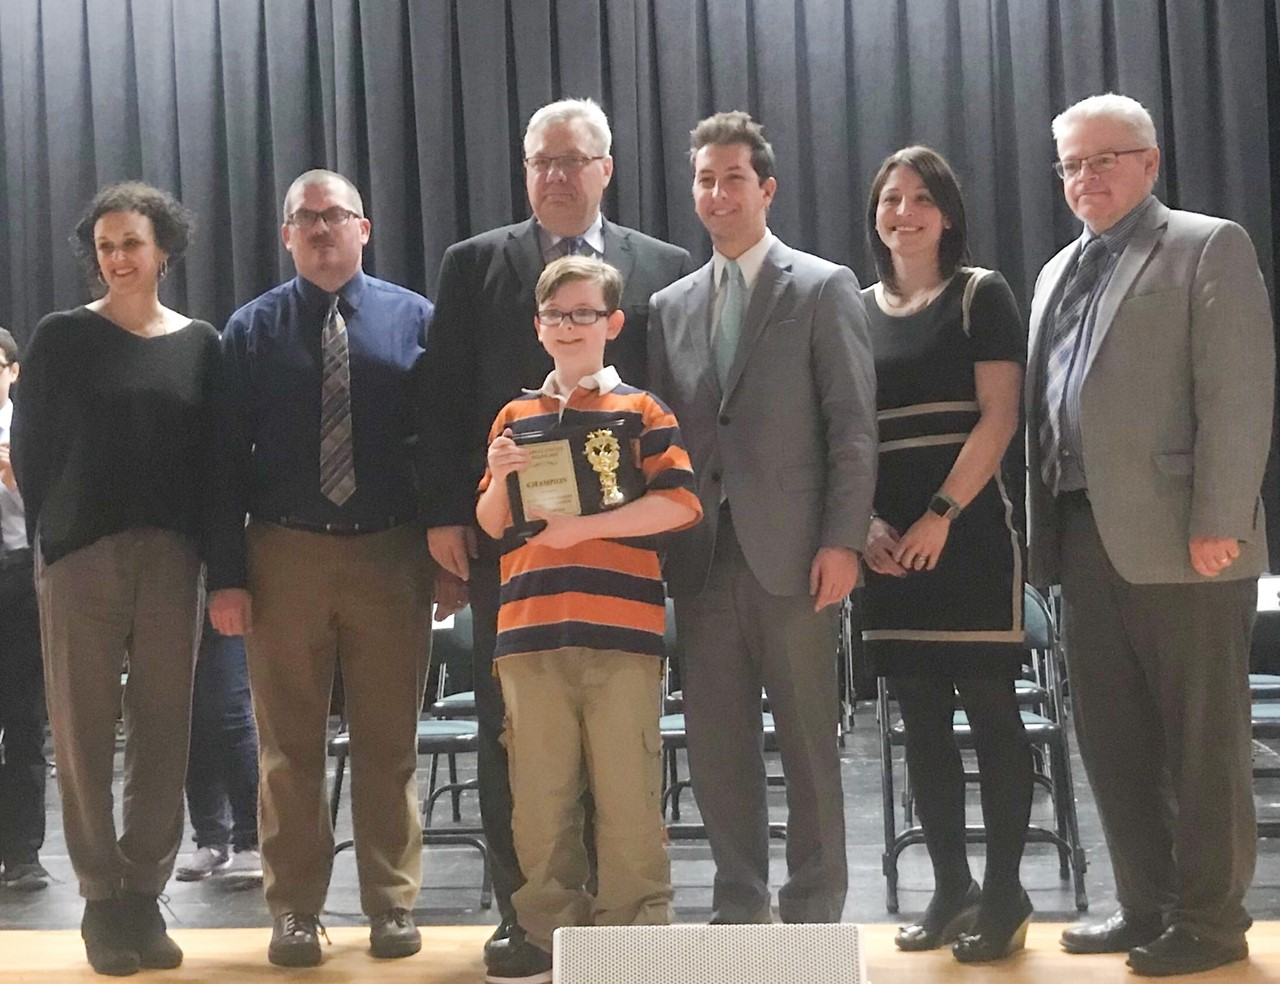 Brian Burkey Jr. of Howland claims title at TCESC spelling bee